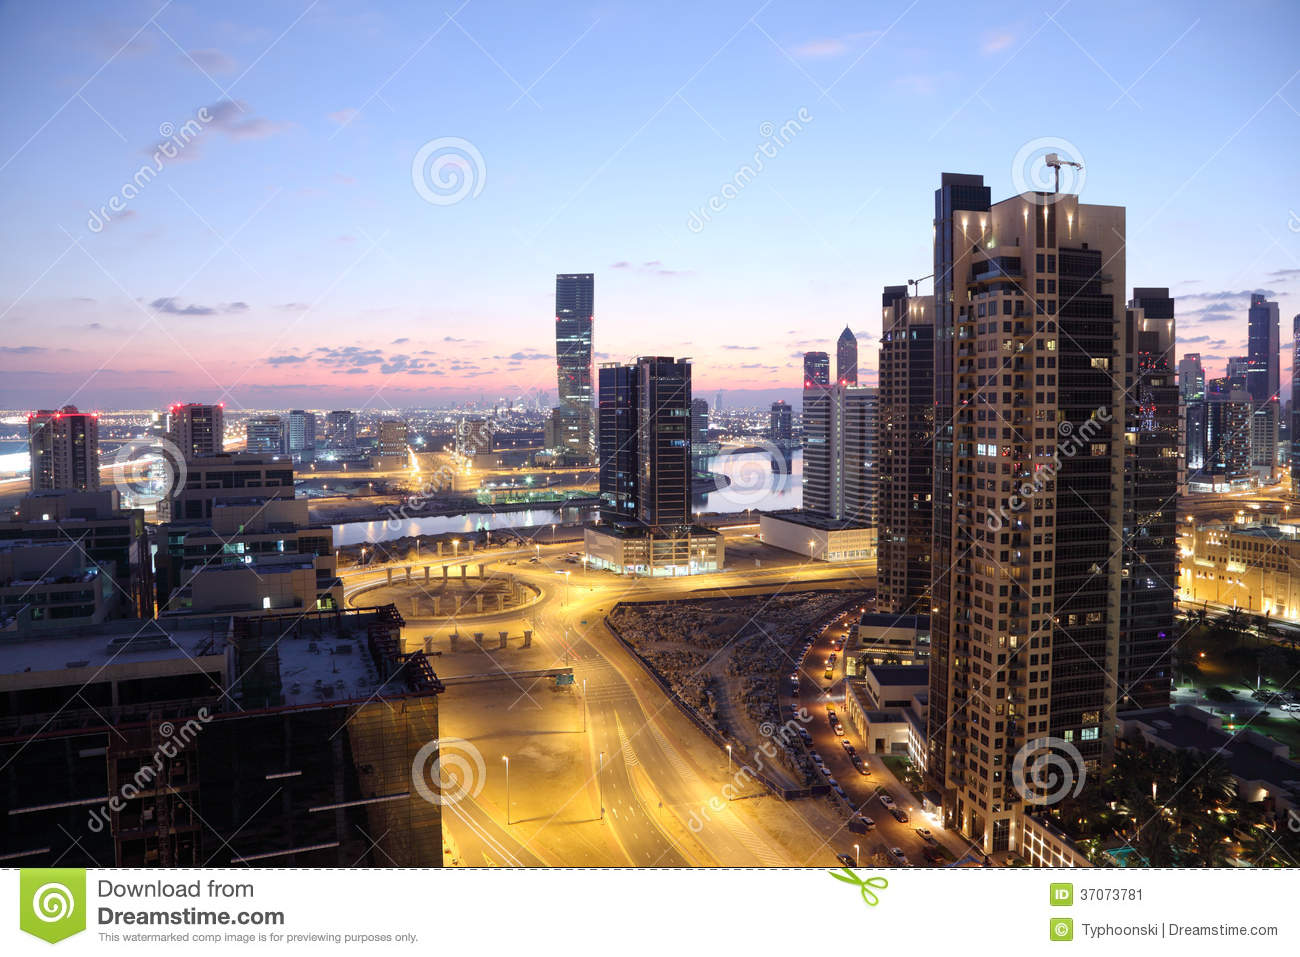 dubai-downtown-dusk-uae-united-arab-emirates-37073781.jpg